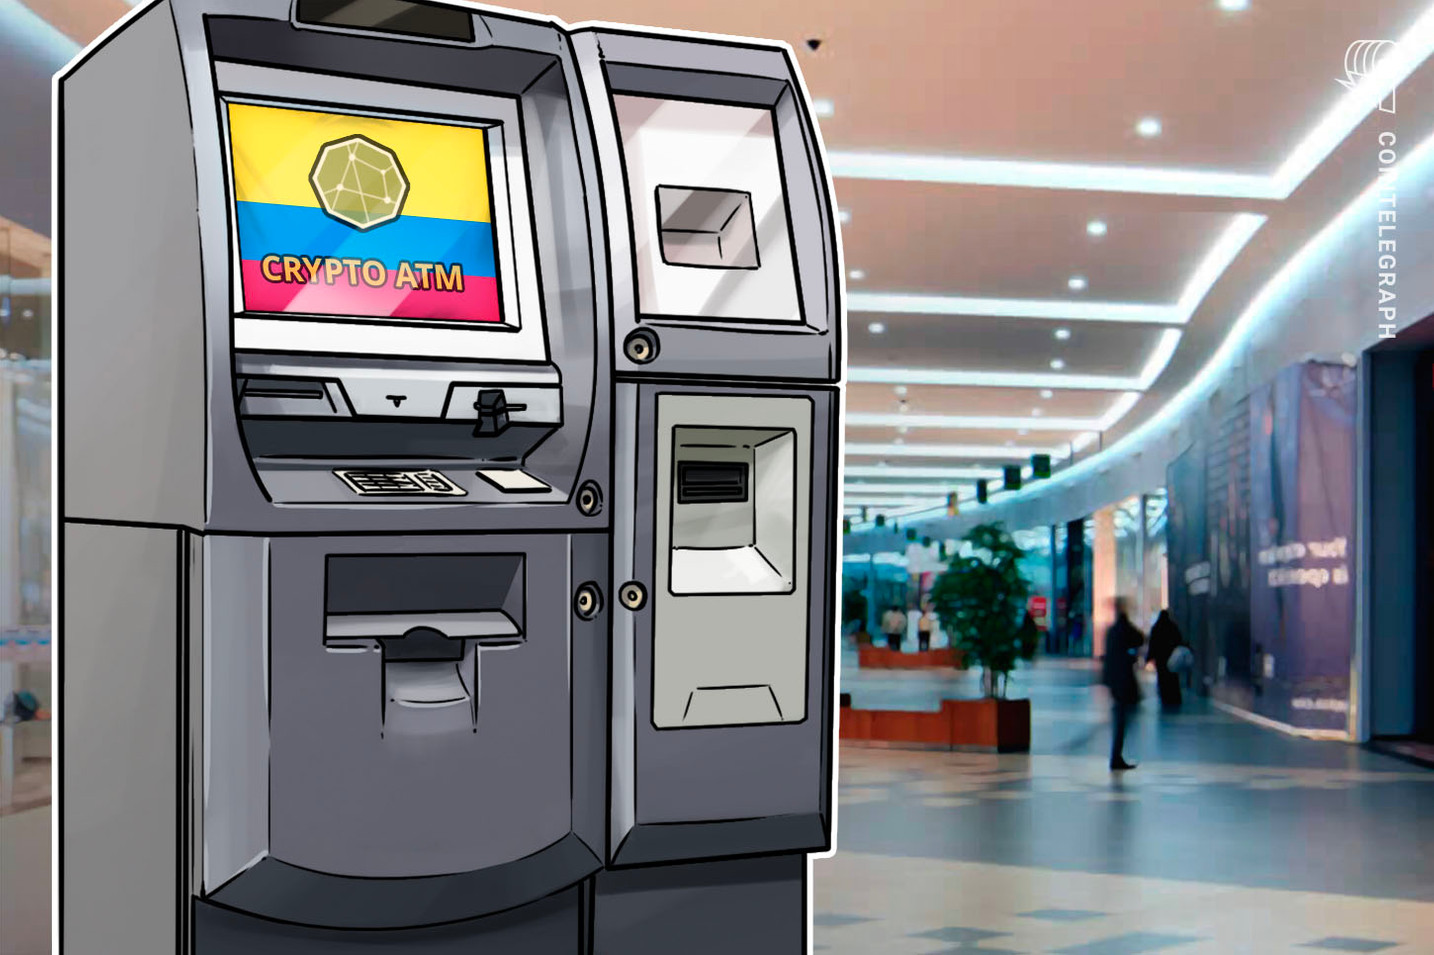 Paxful Joins Forces With CoinLogiq to Bring Crypto ATMs to Columbia and Peru